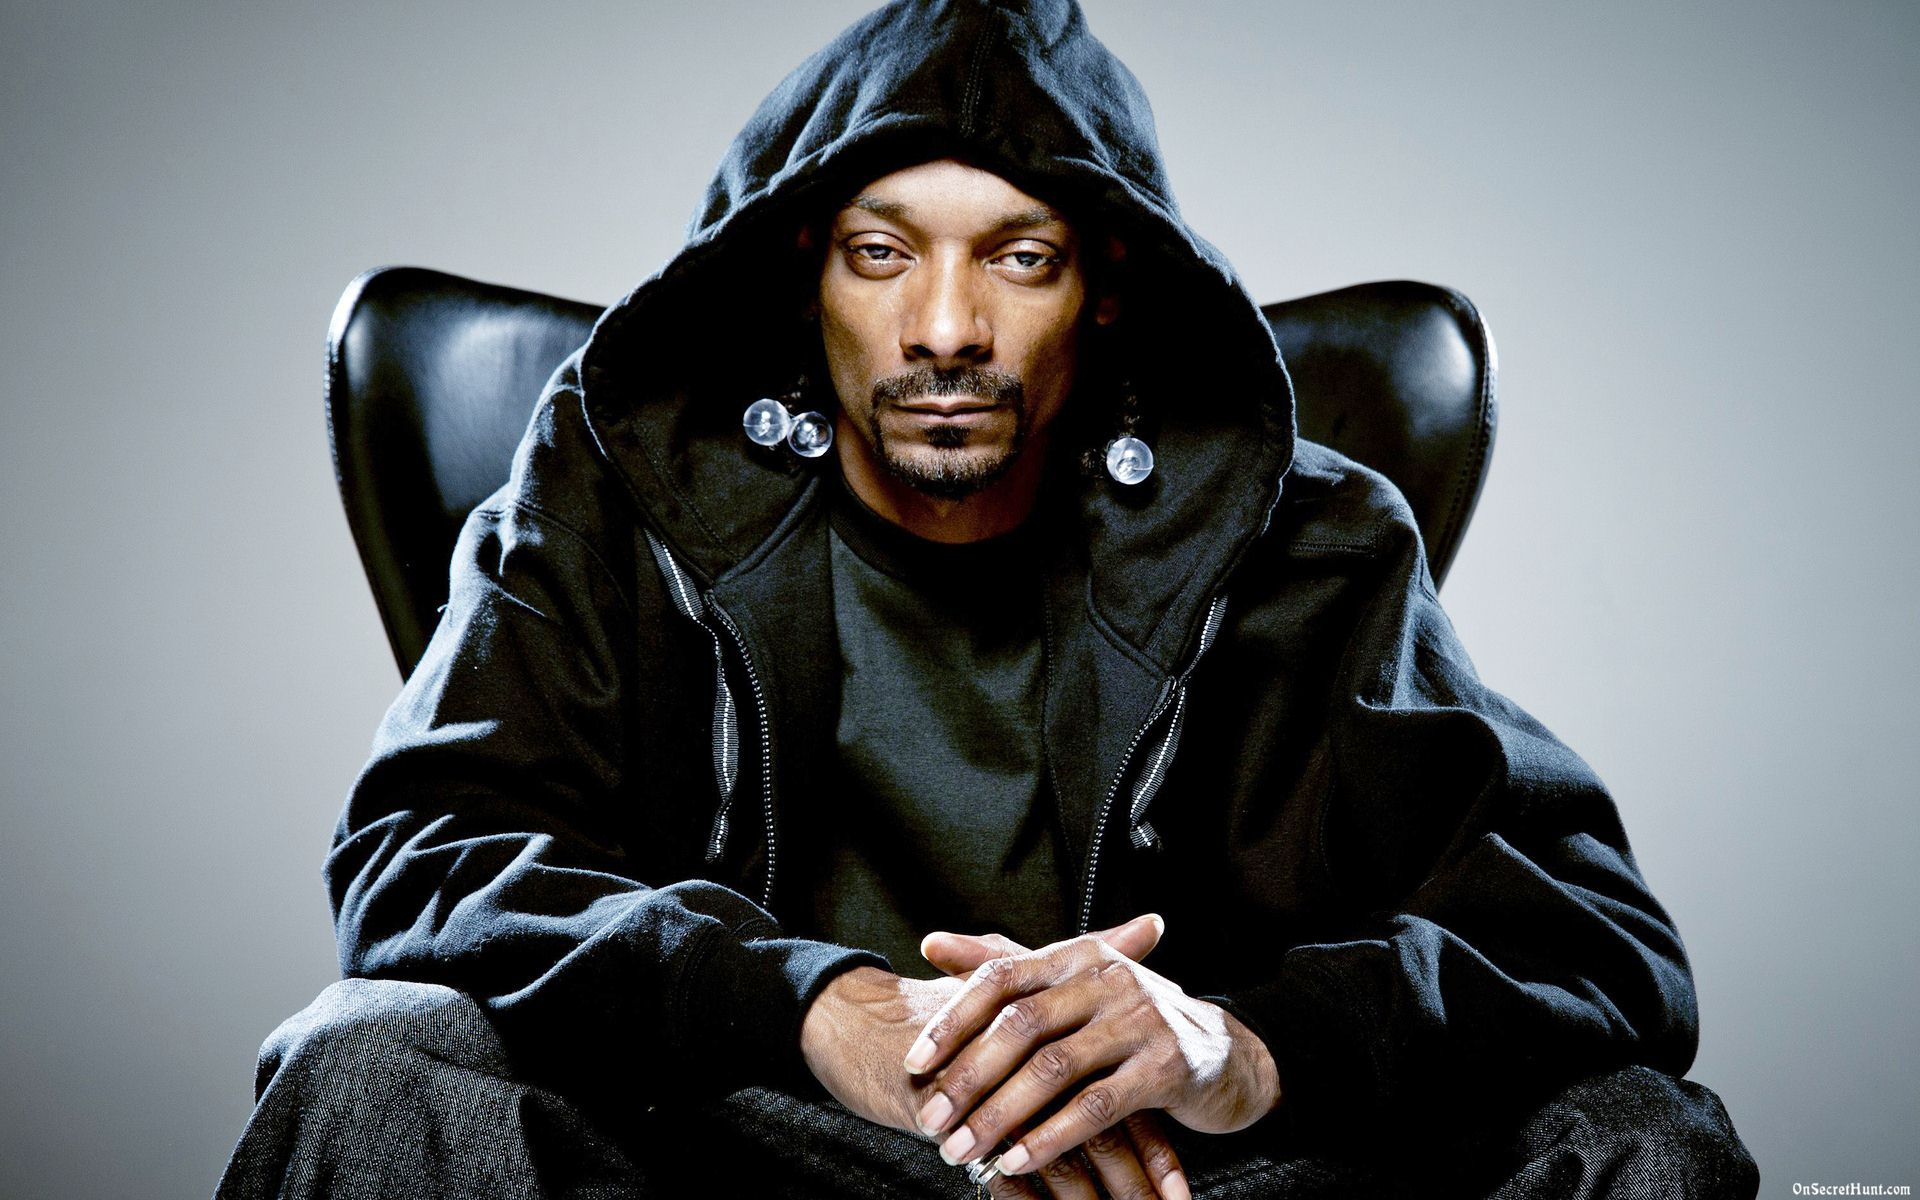 Snoop Dogg Groups Up With Kendrick Lamar And Rick Ross On New Song I'm Ya Dogg